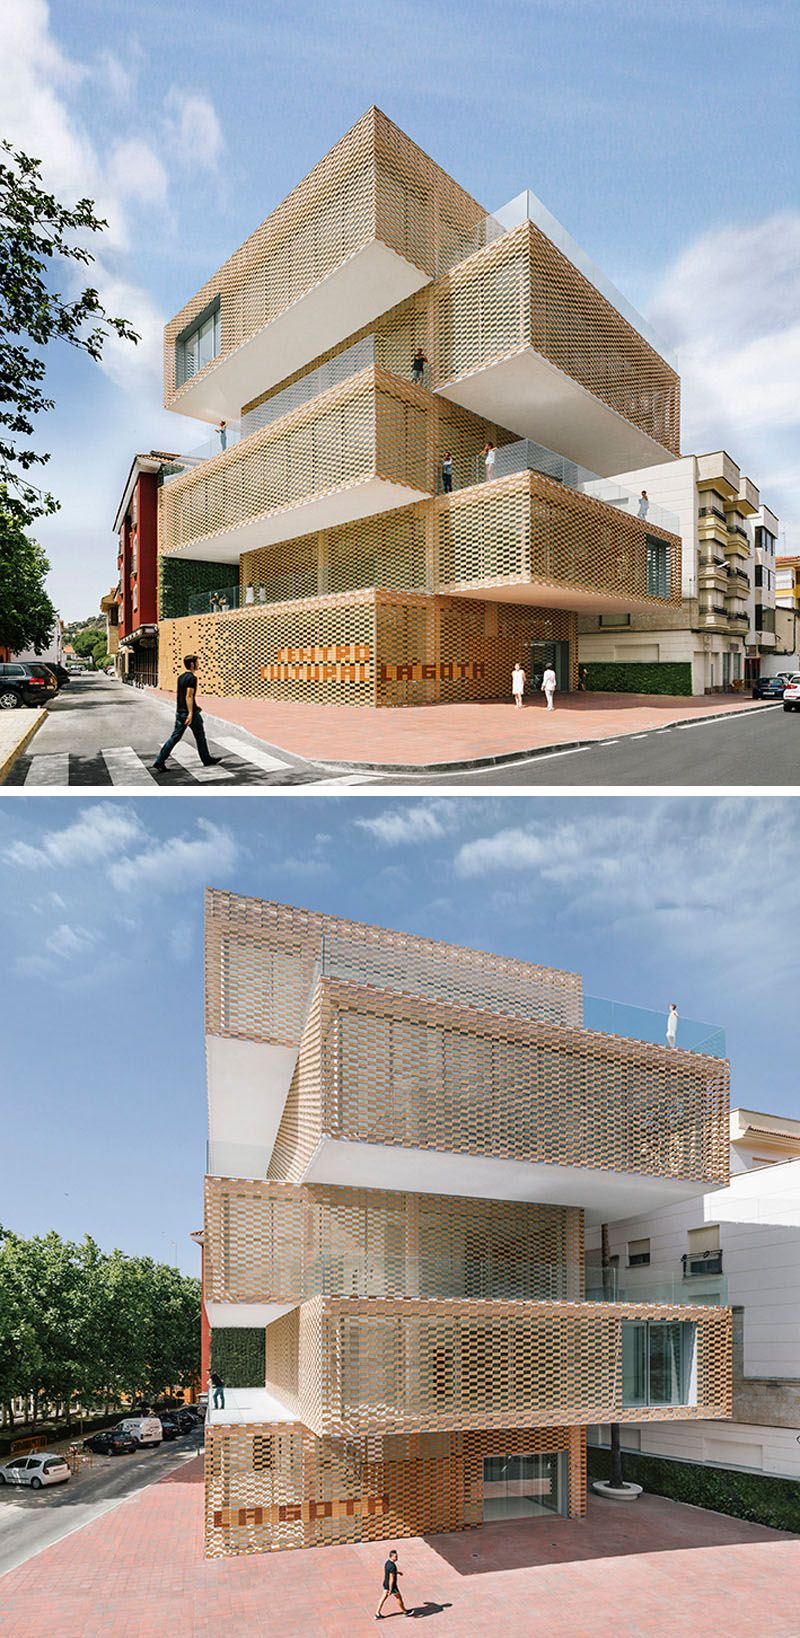 13 Architecturally Amazing Museums From Around The World Exterior Design Architecture Modern Architectural Styles